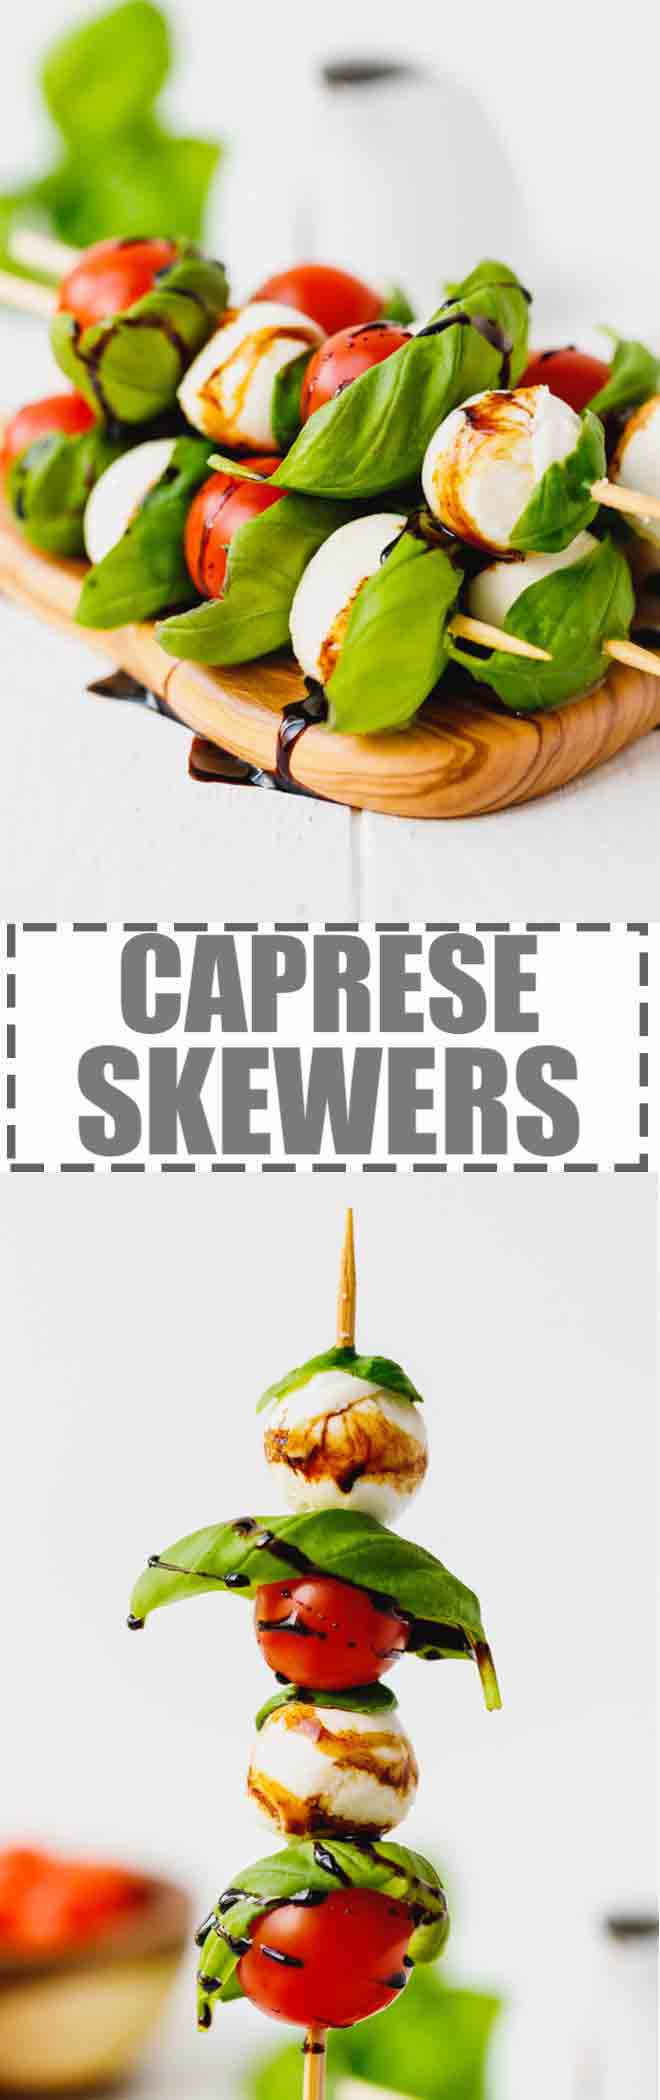 Caprese Skewers With Balsamic Glaze Recipe - light and fresh Caprese salad on a stick. Party style appetizer made with just four main ingredients and wooden skewers. #CAPRESE #SKEWERS #SALAD #PARTYFOOD #ANTIPASTO